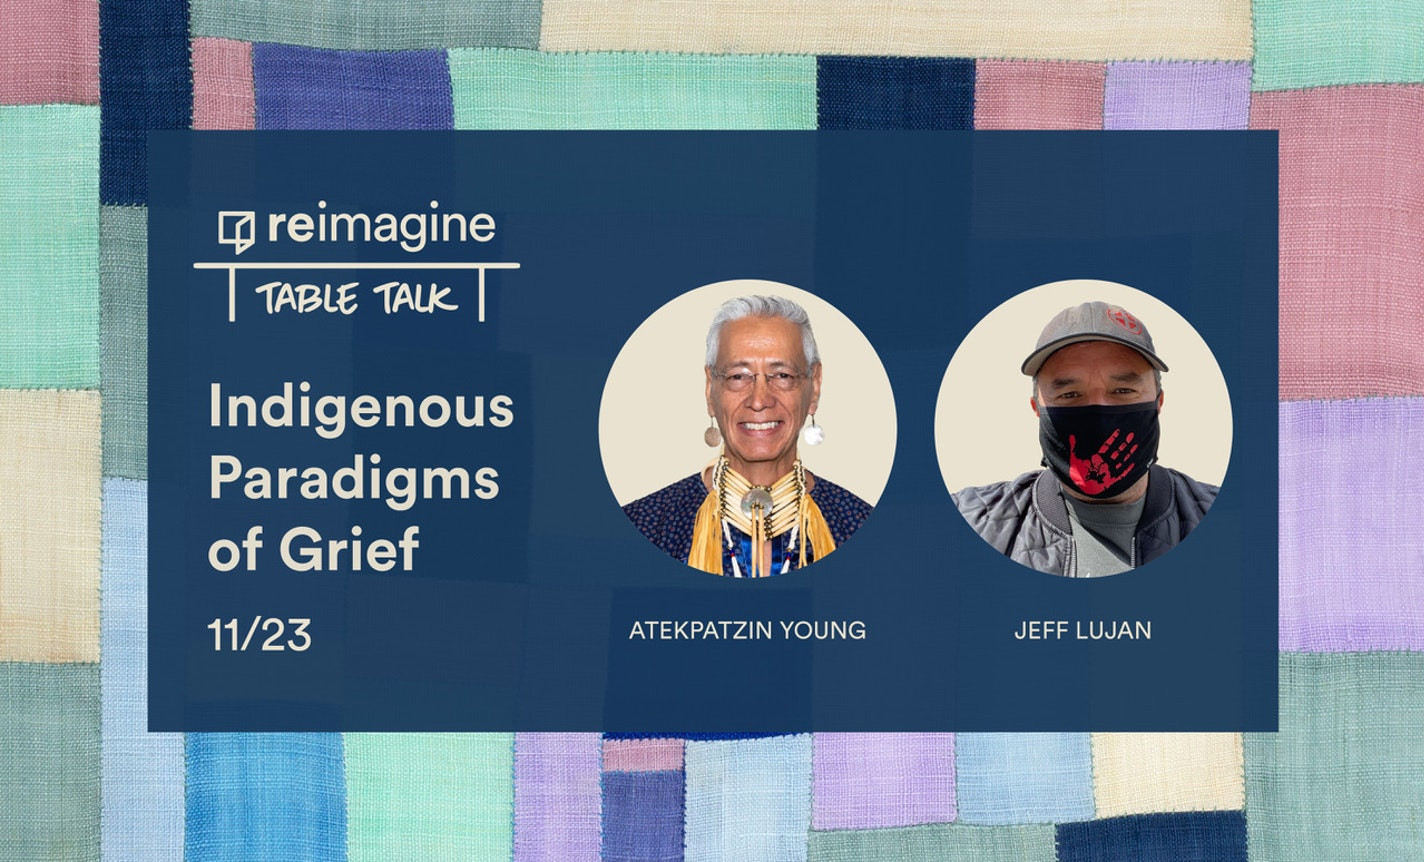 Table Talk: Indigenous Paradigms of Grief